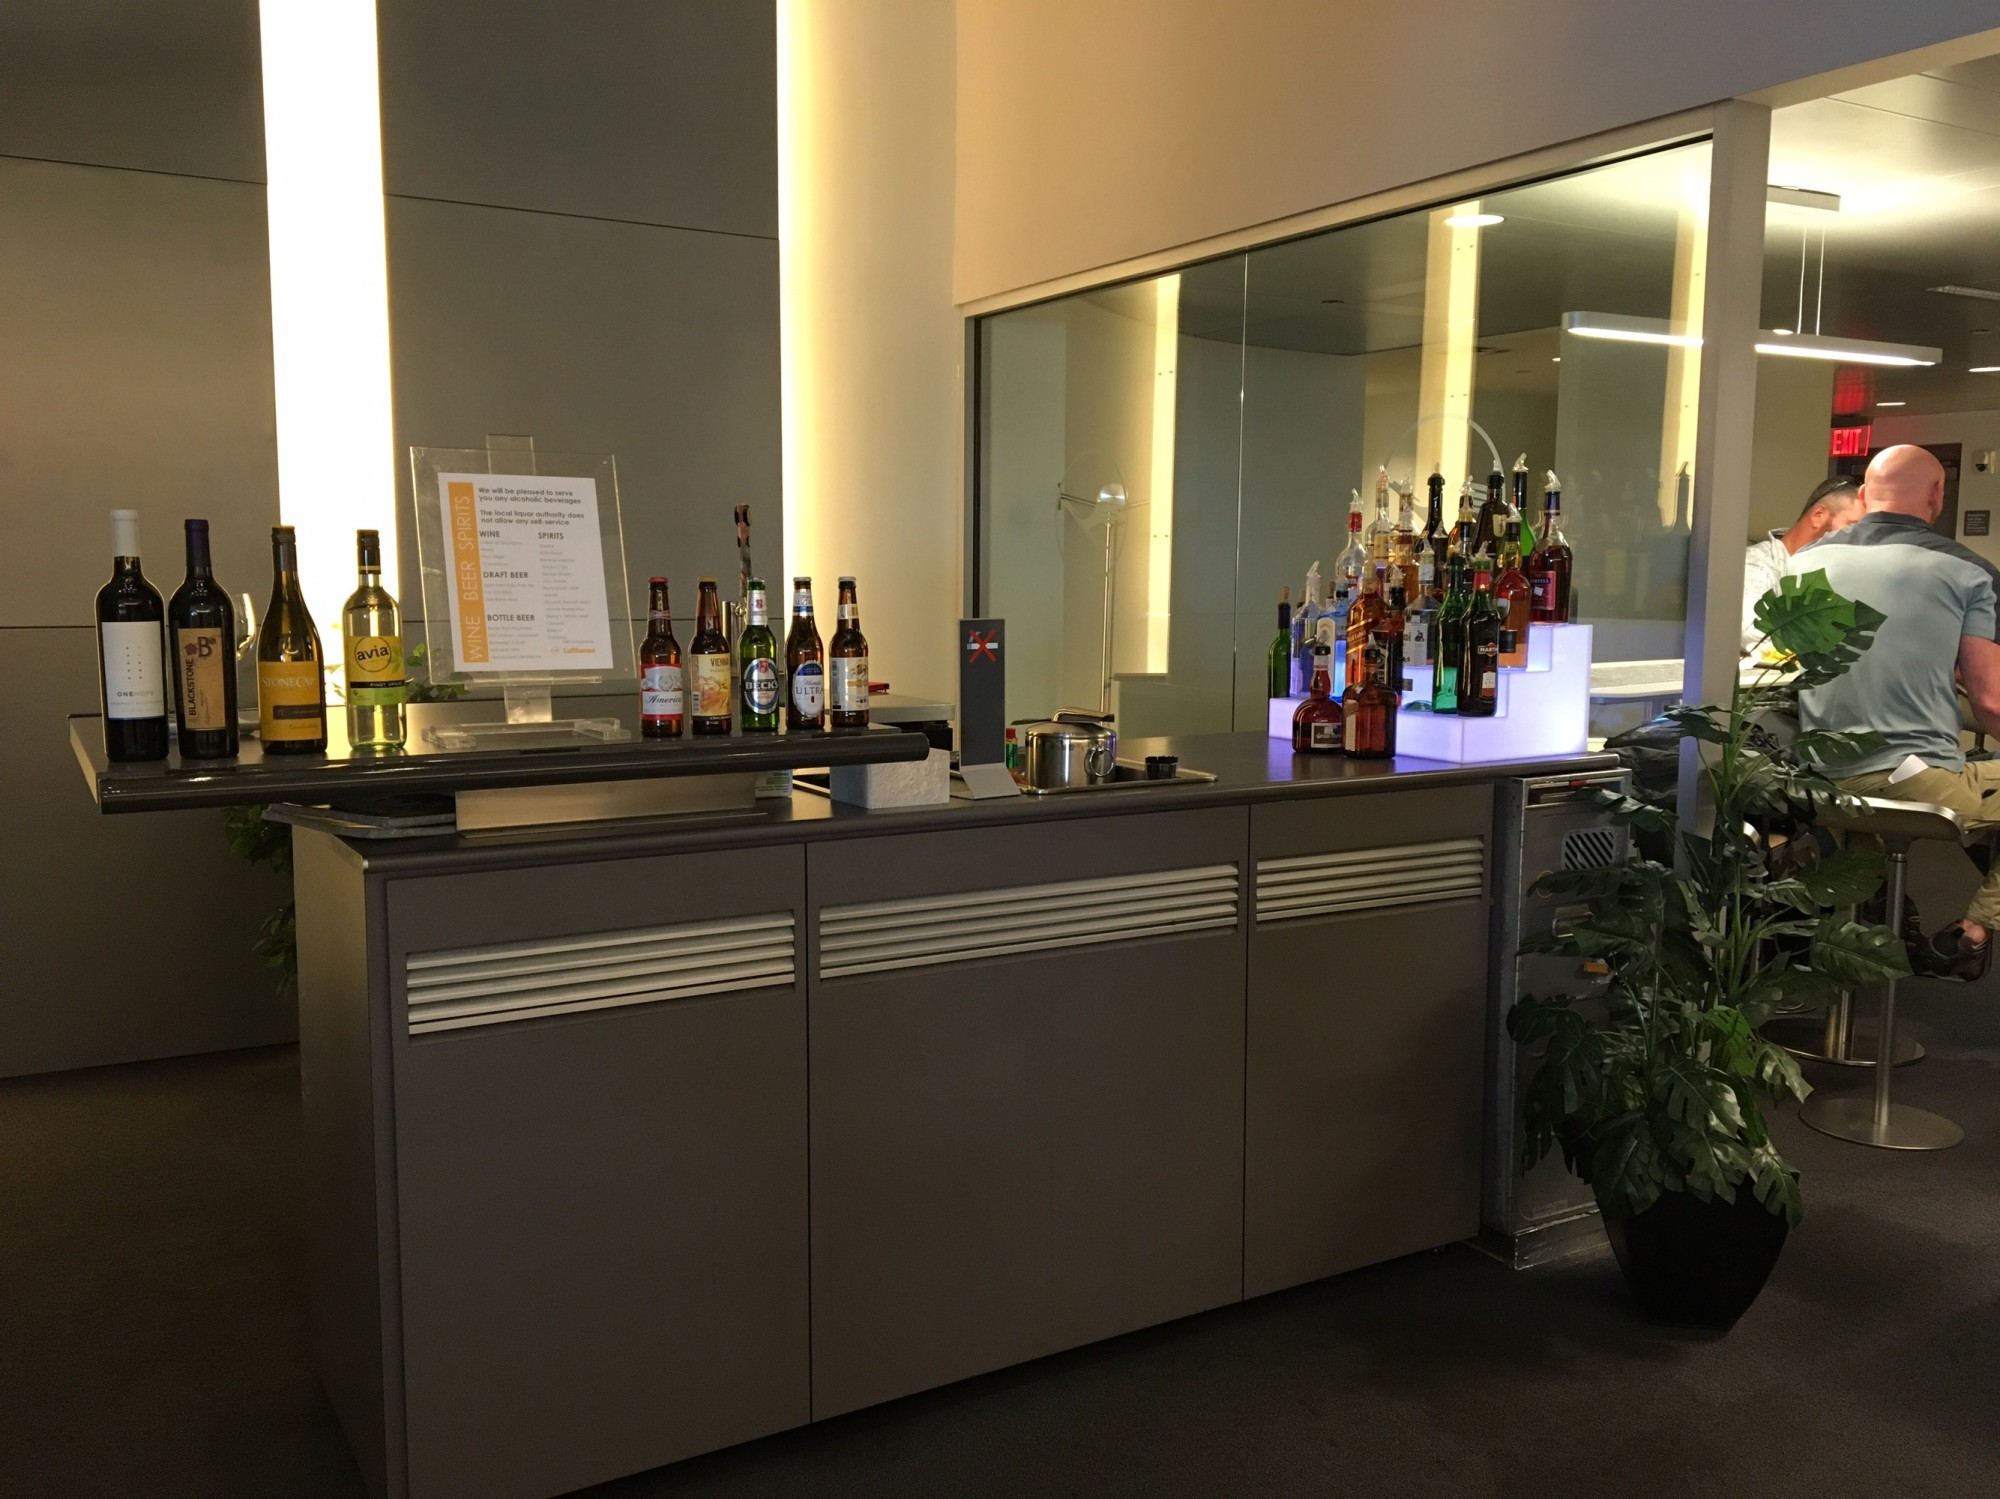 Iad Lufthansa Business Lounge Reviews Photos Concourse B Washington Dulles International Airport Loungebuddy